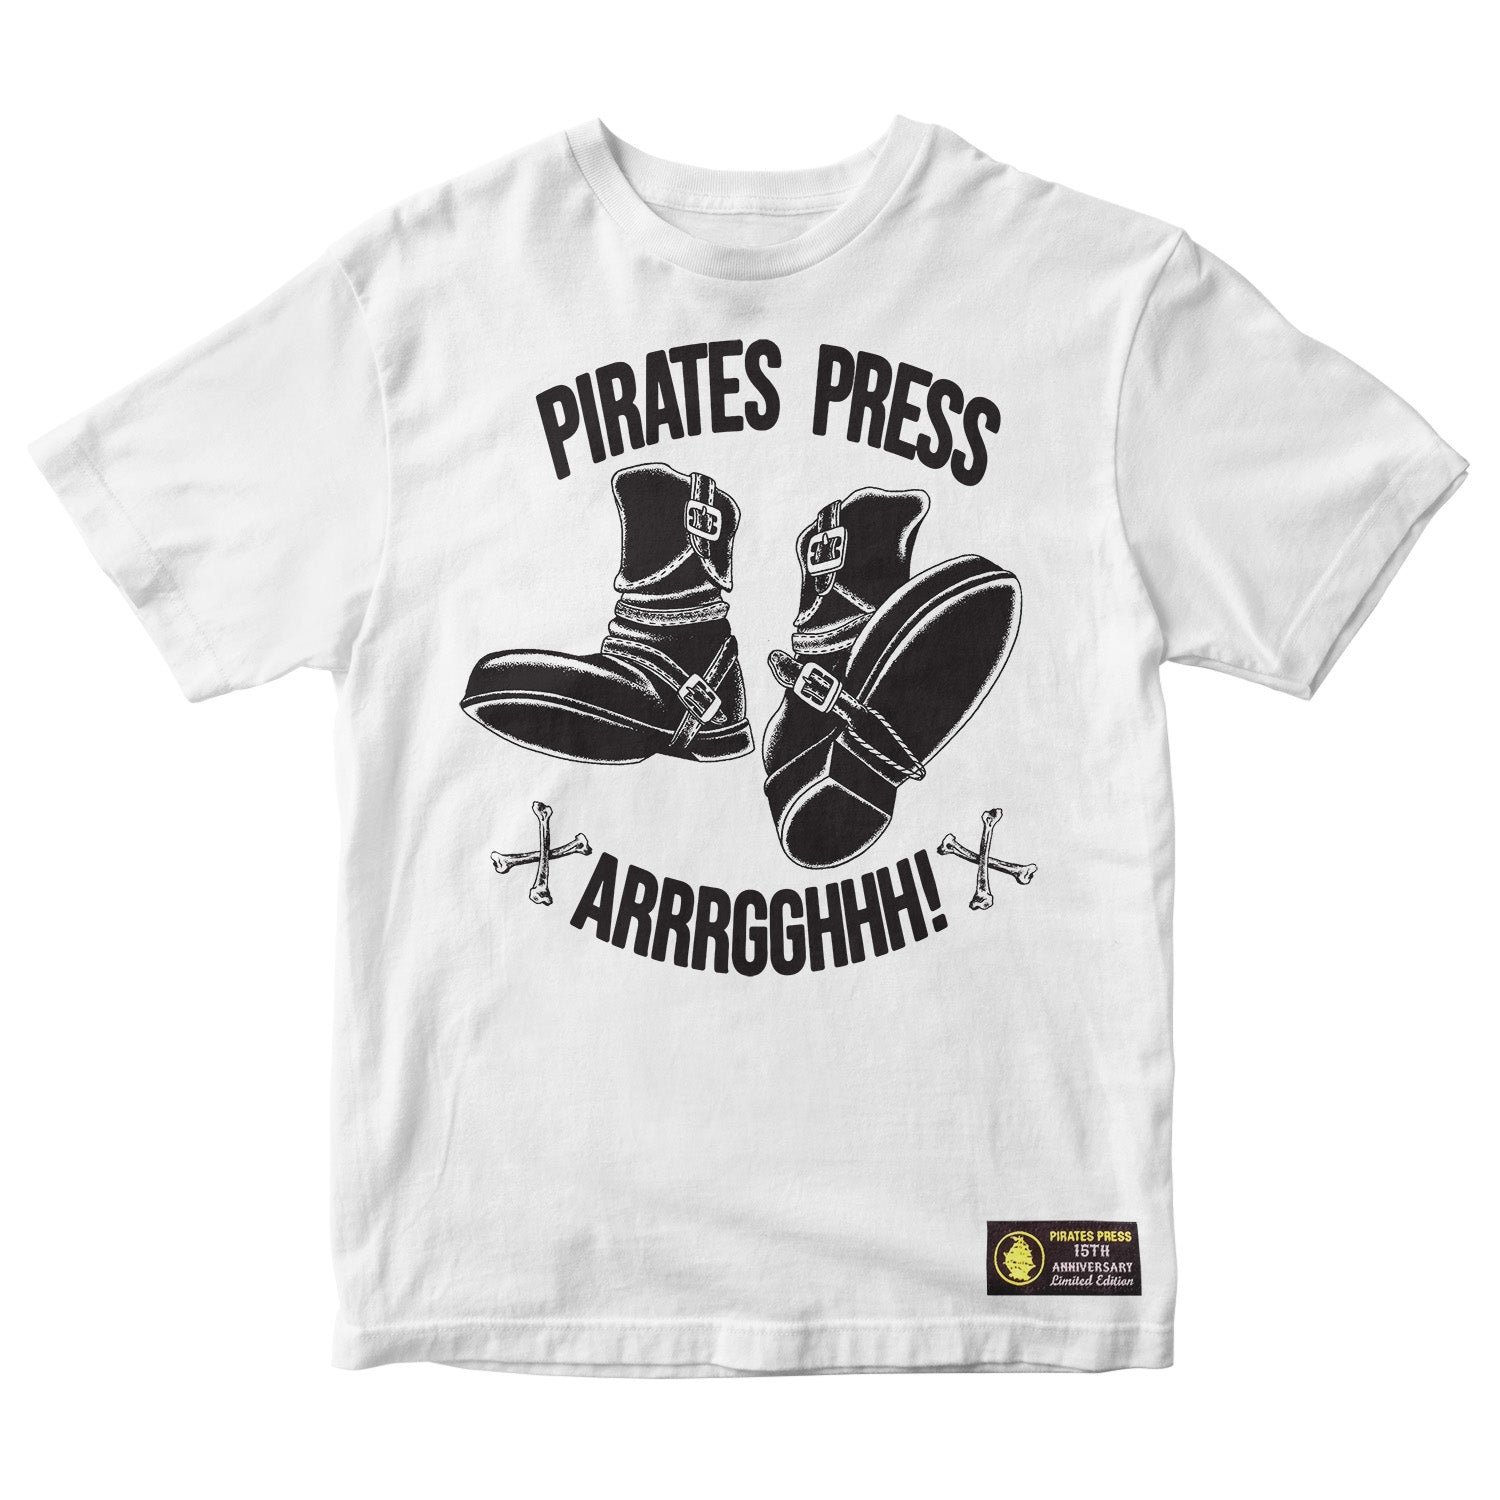 Pirates Press 15th Anniversary - Dan Smith - White - T-Shirt